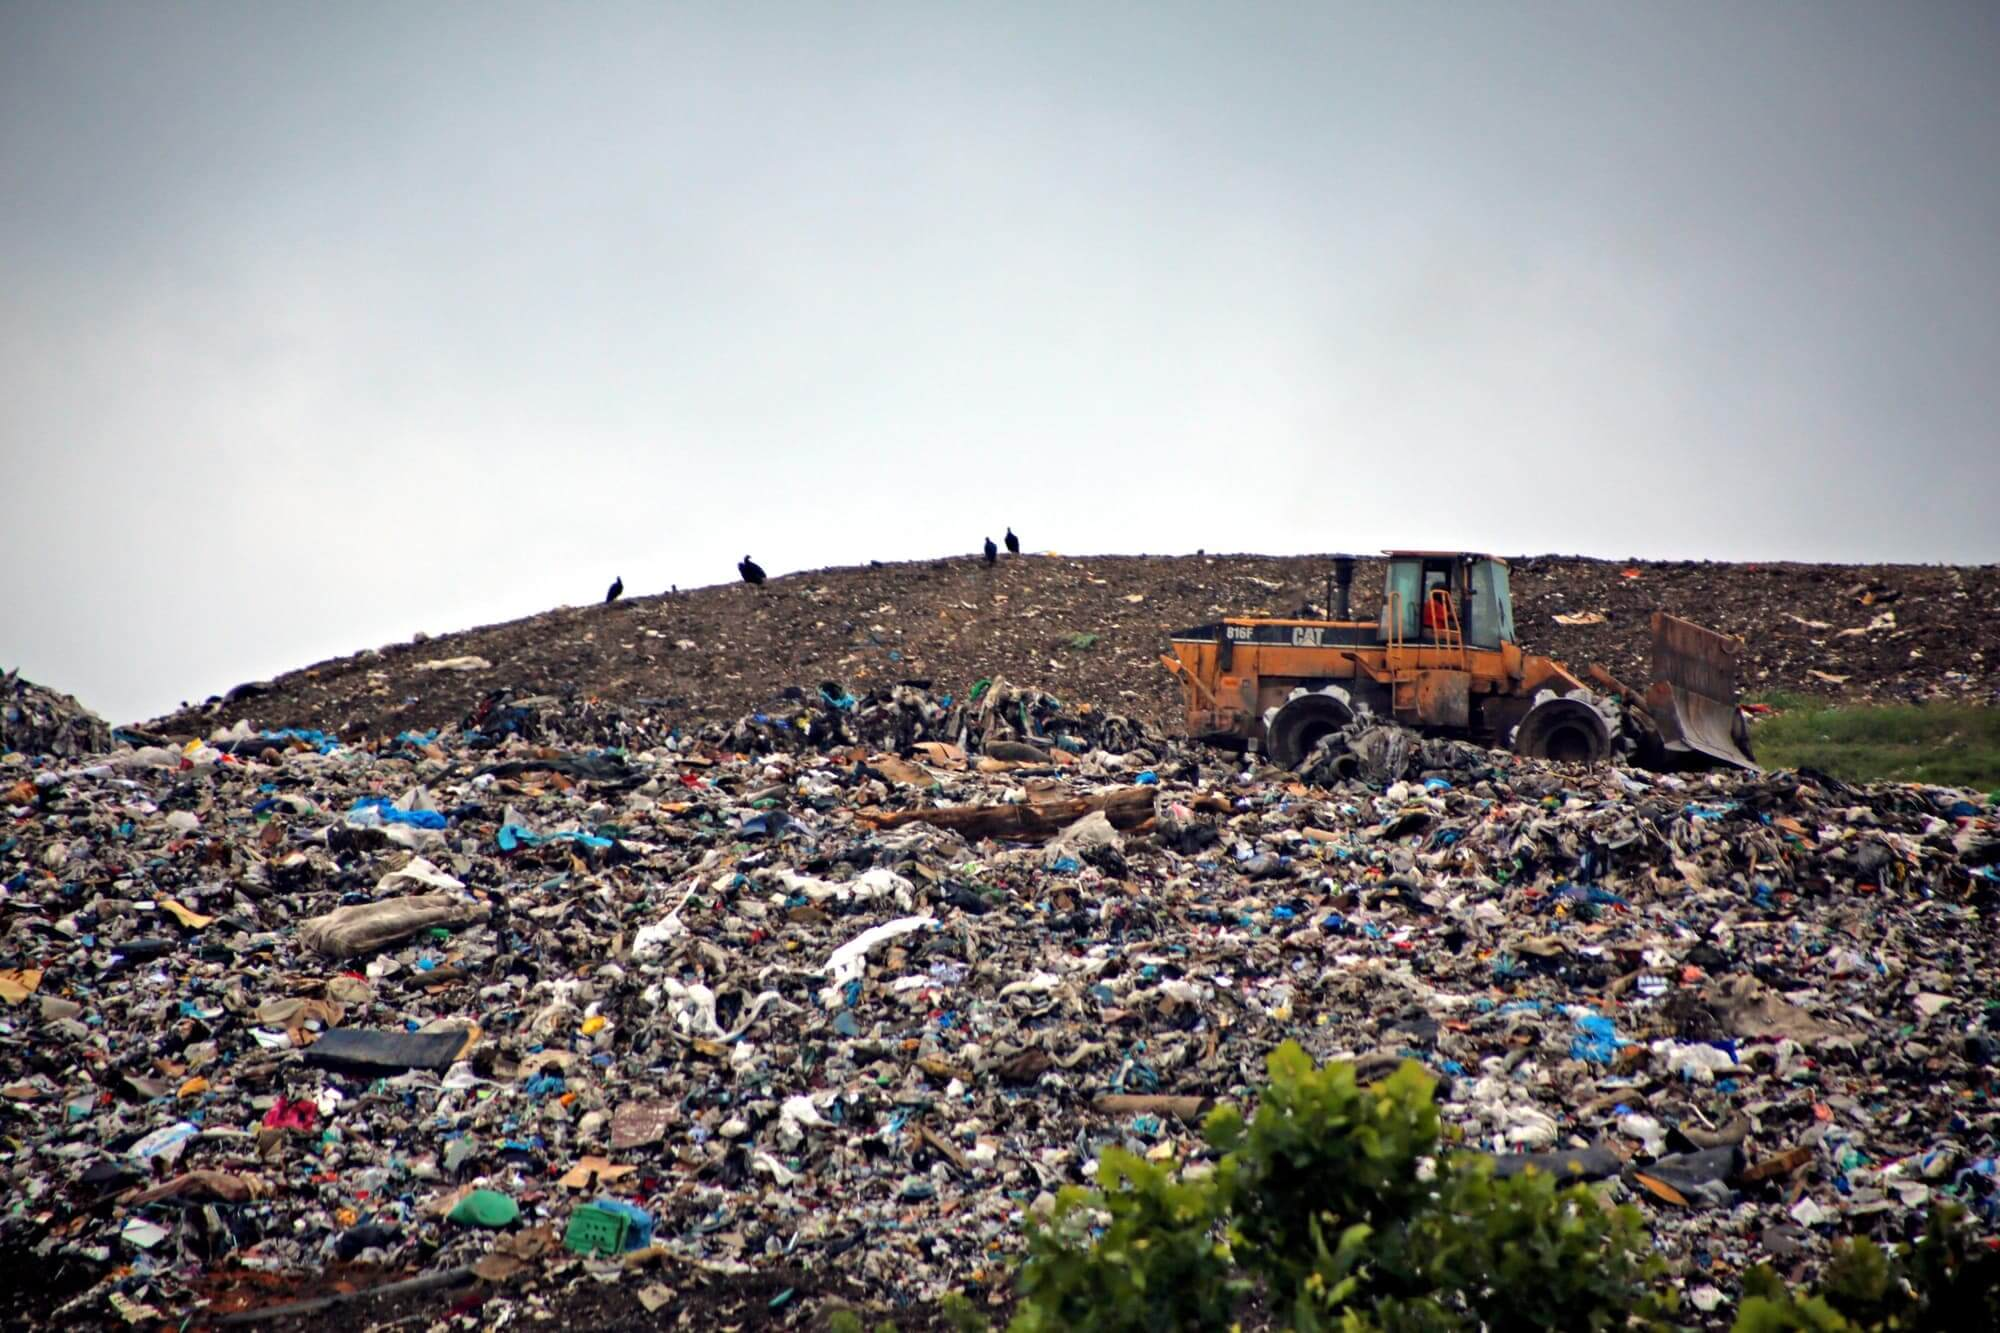 Picture of landfill with trash, people, and yellow bulldozer.